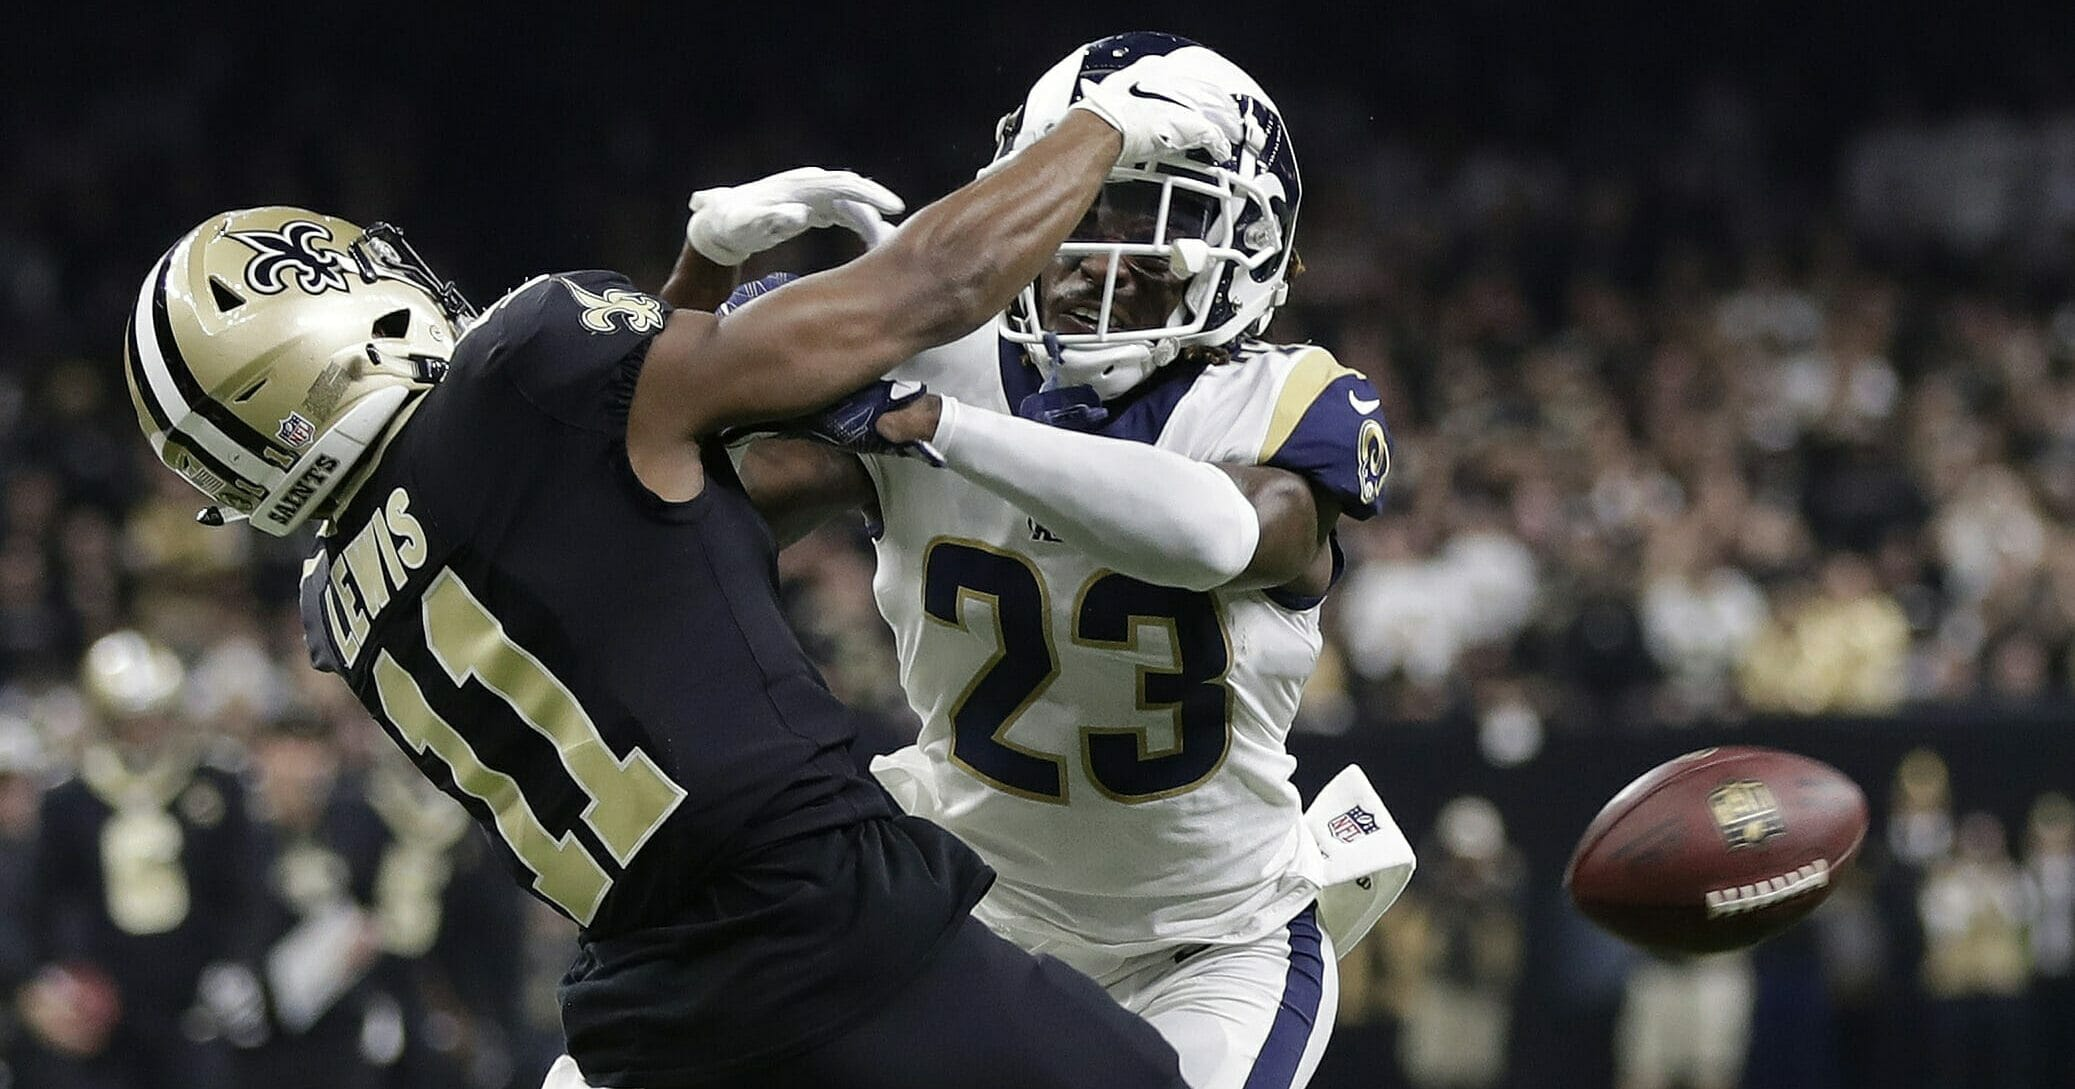 Los Angeles Rams' Nickell Robey-Coleman (23) breaks up a pass intended for New Orleans Saints' Tommylee Lewis during the NFC championship game Jan. 20, 2019.